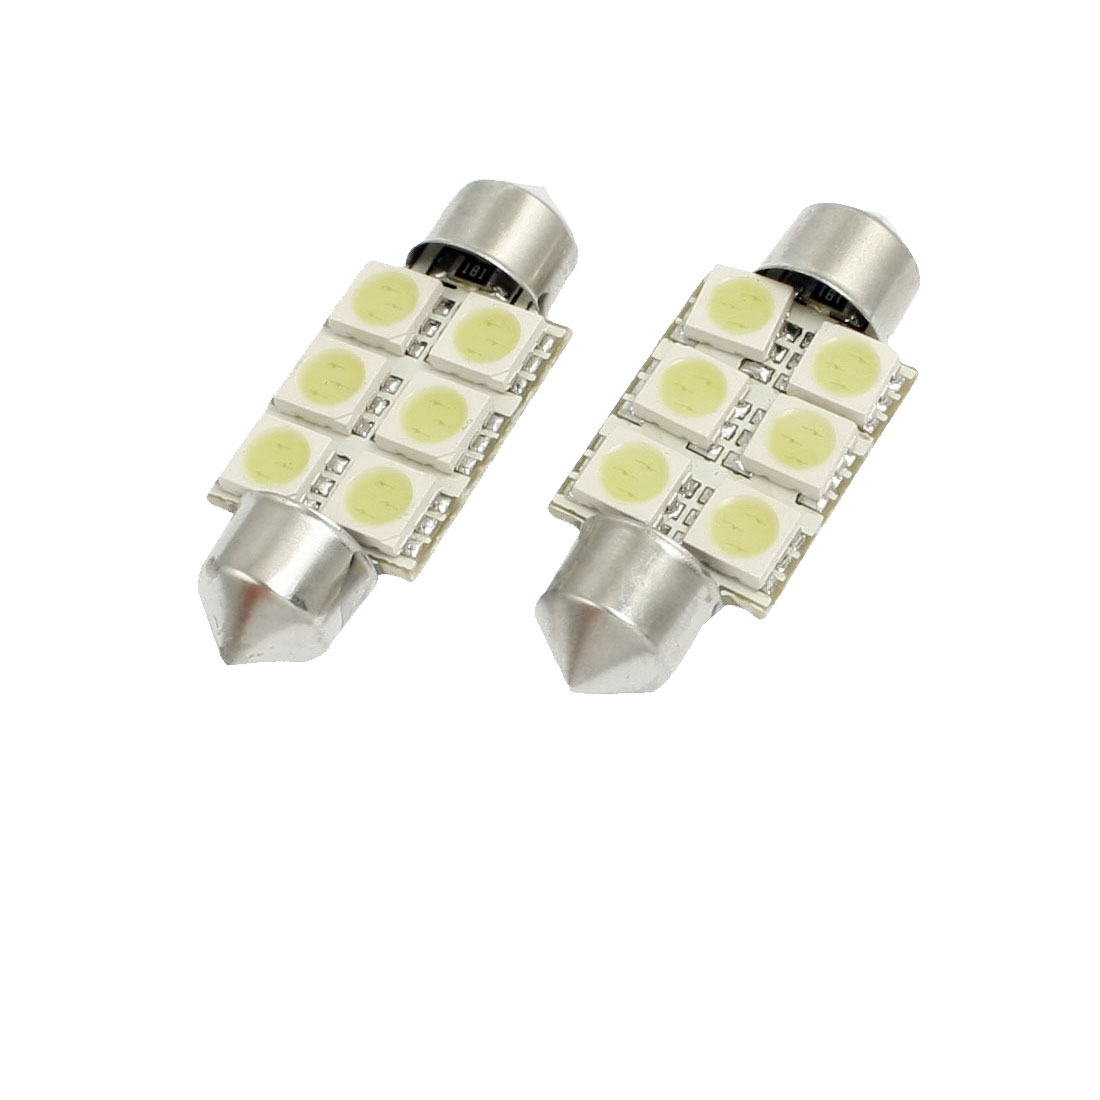 "2xWhite 5050-SMD 1.50"" 36mm 6418 6-LED Bulbs For Car Dome Lights"